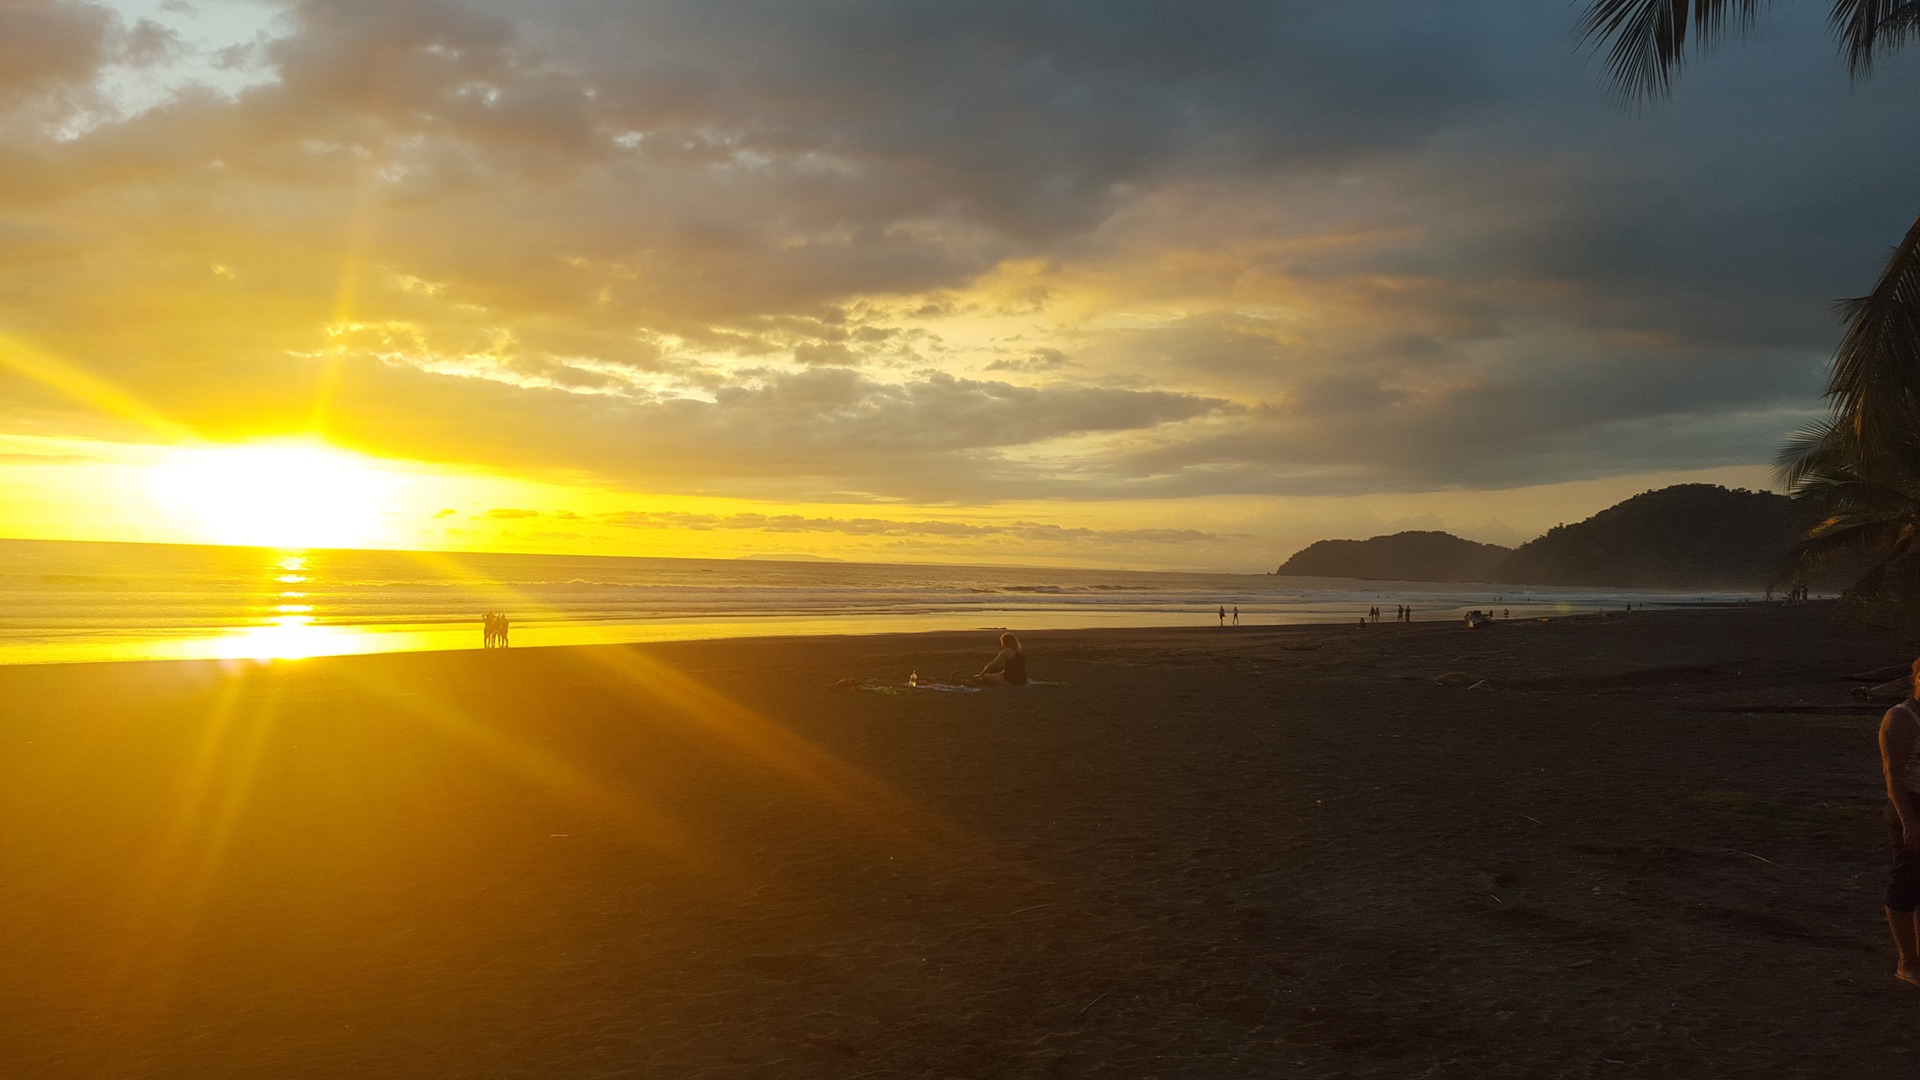 COSTA RICA BE A DIGITAL NOMAD